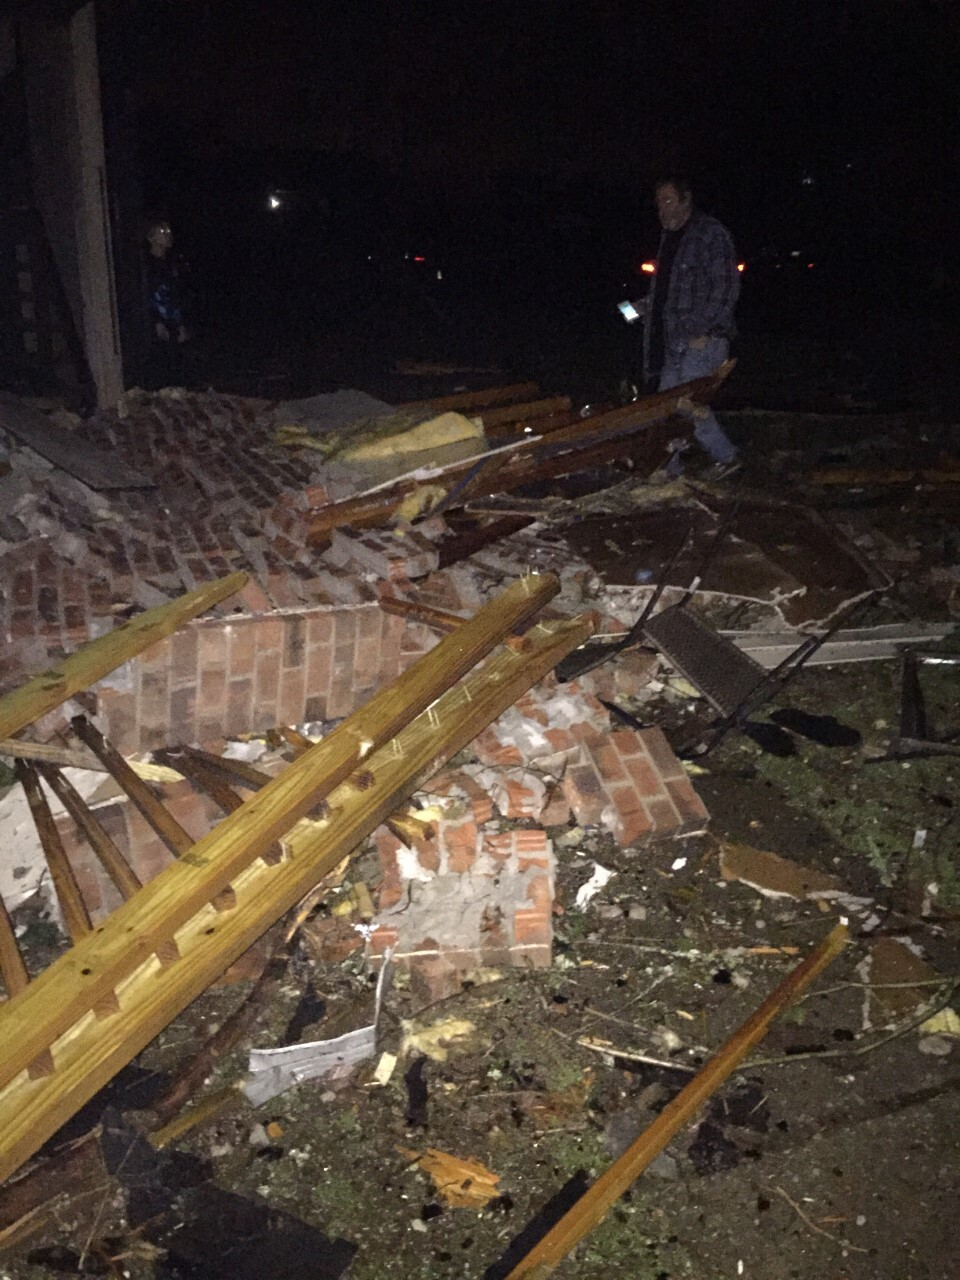 GALLERY: Damage in Davidson County following Monday night severe storms